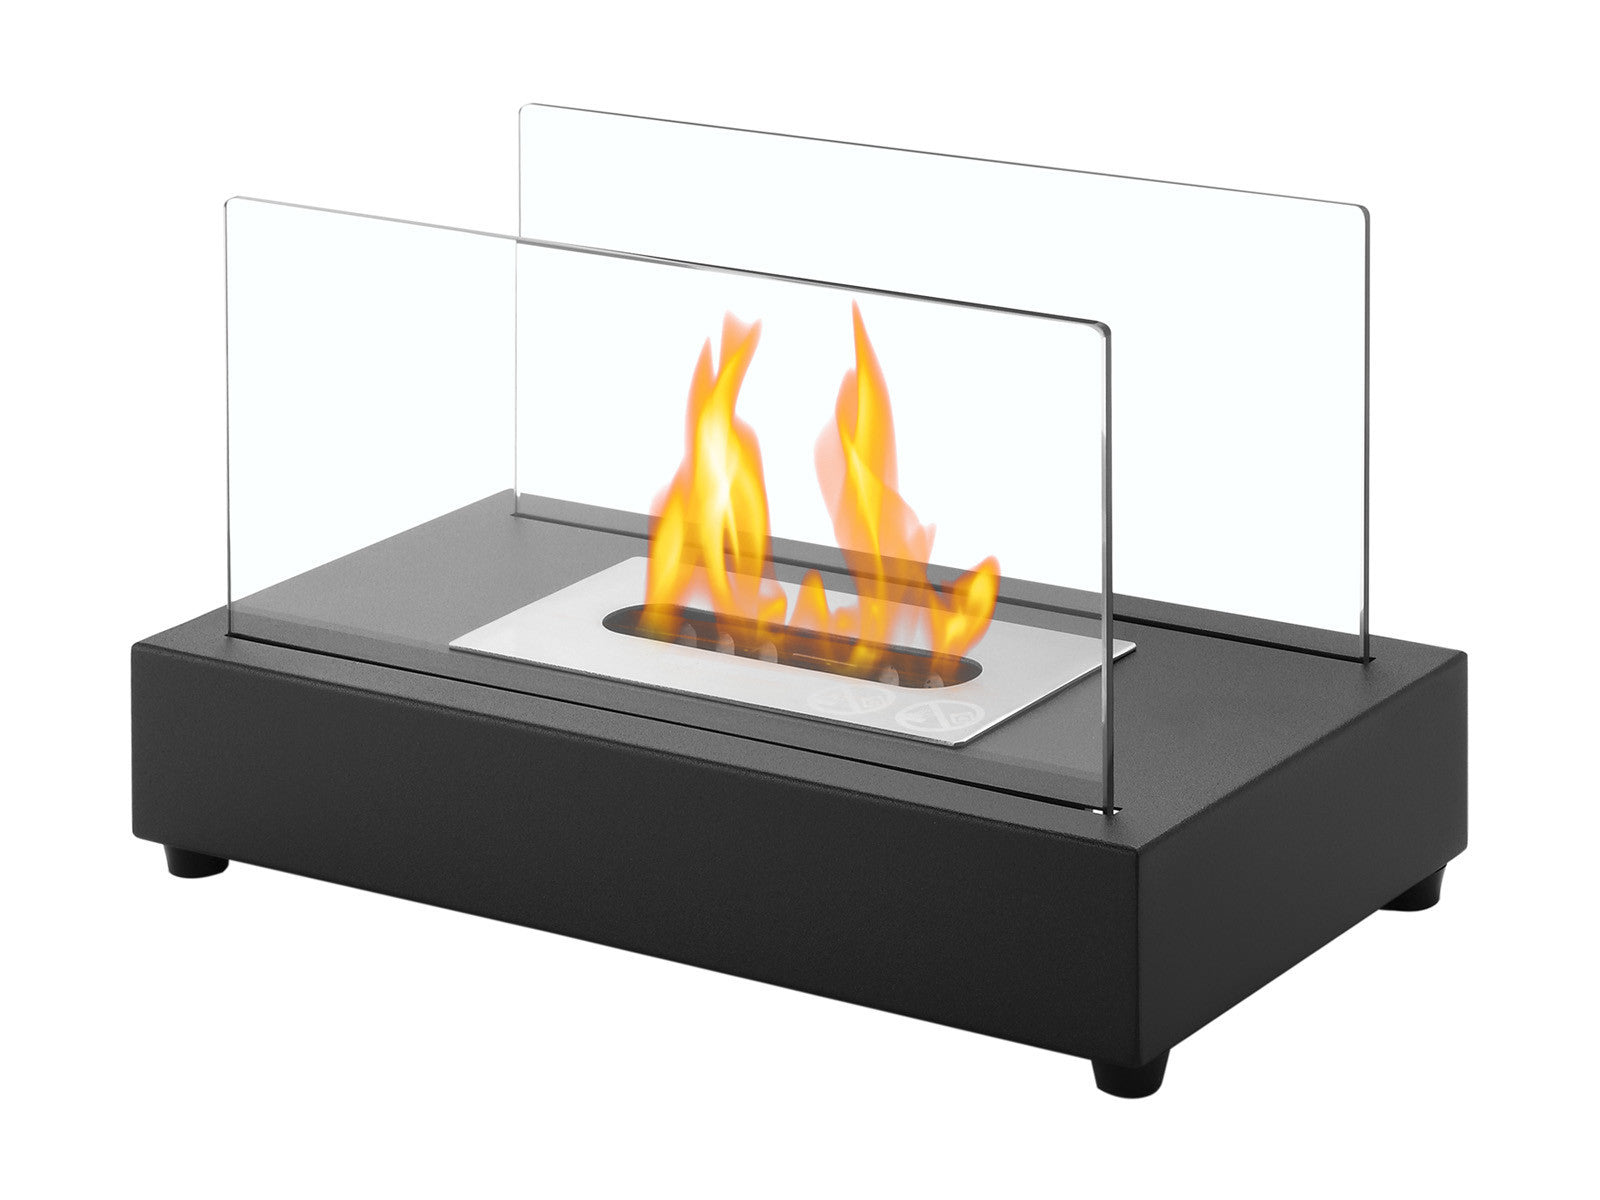 Tower Tabletop Ventless Ethanol Fireplace   Ventless Fireplace Pros ...